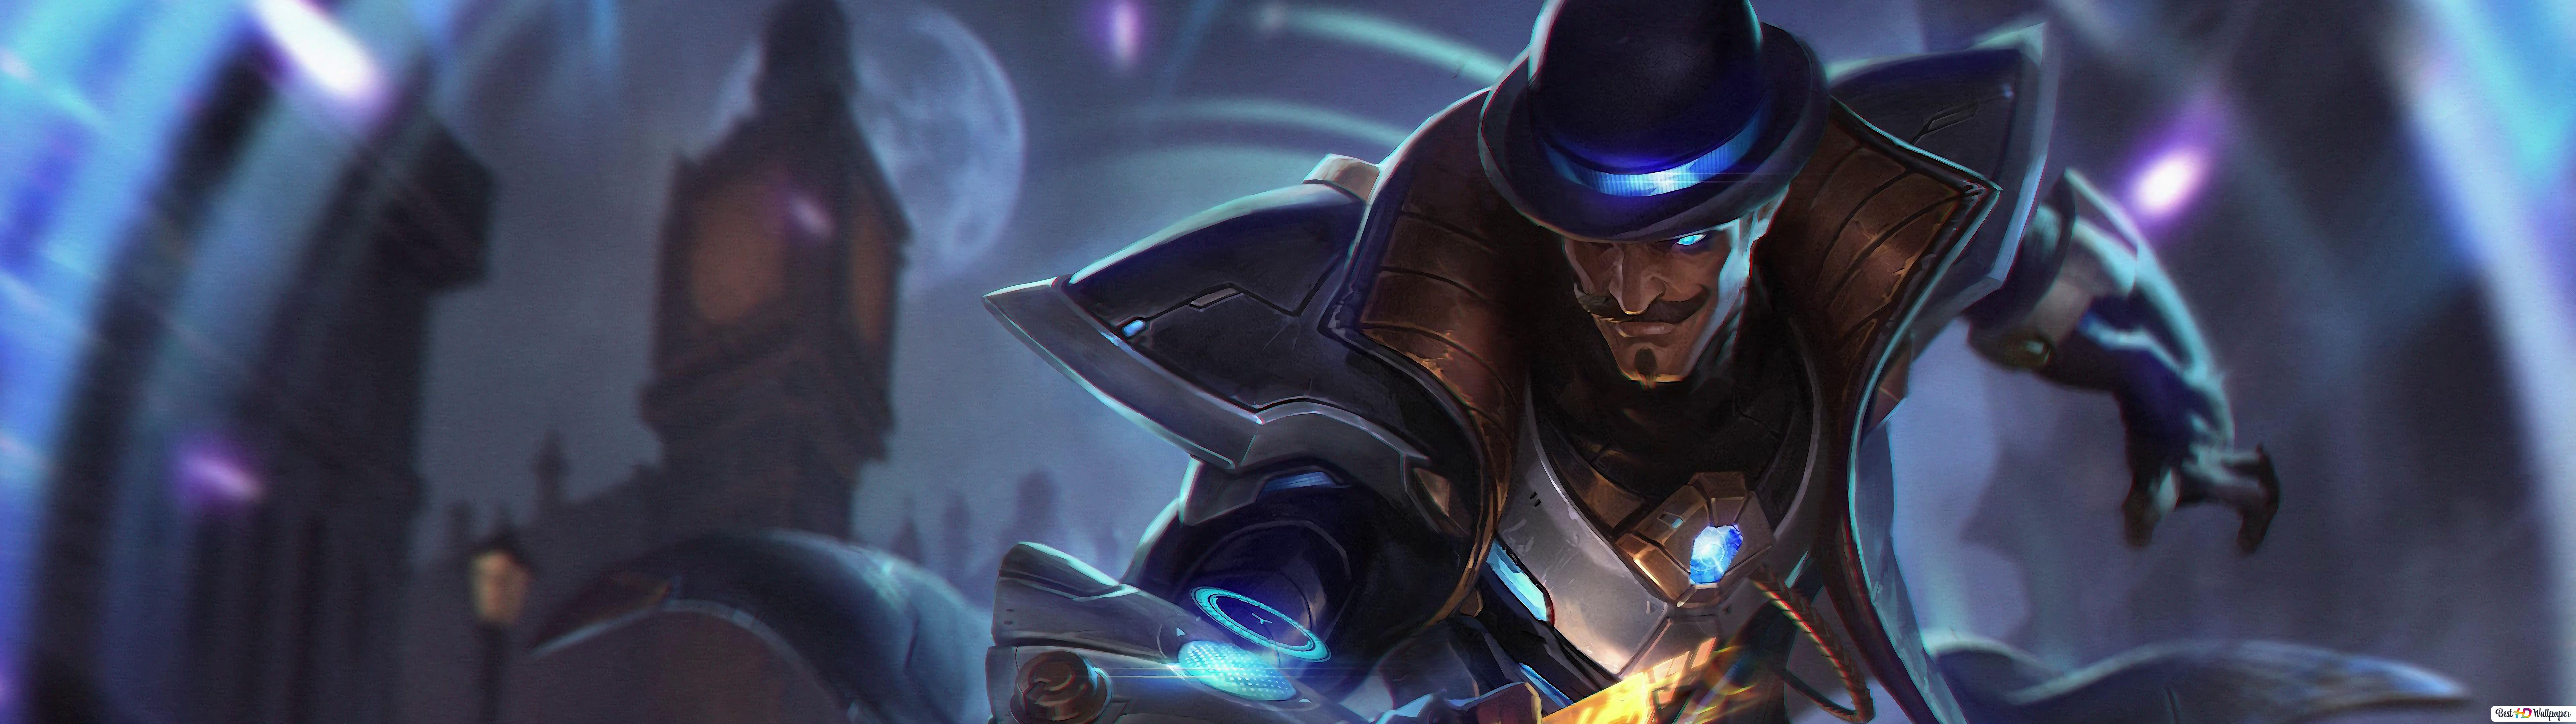 League Of Legends Twisted Fate Hd Wallpaper Download